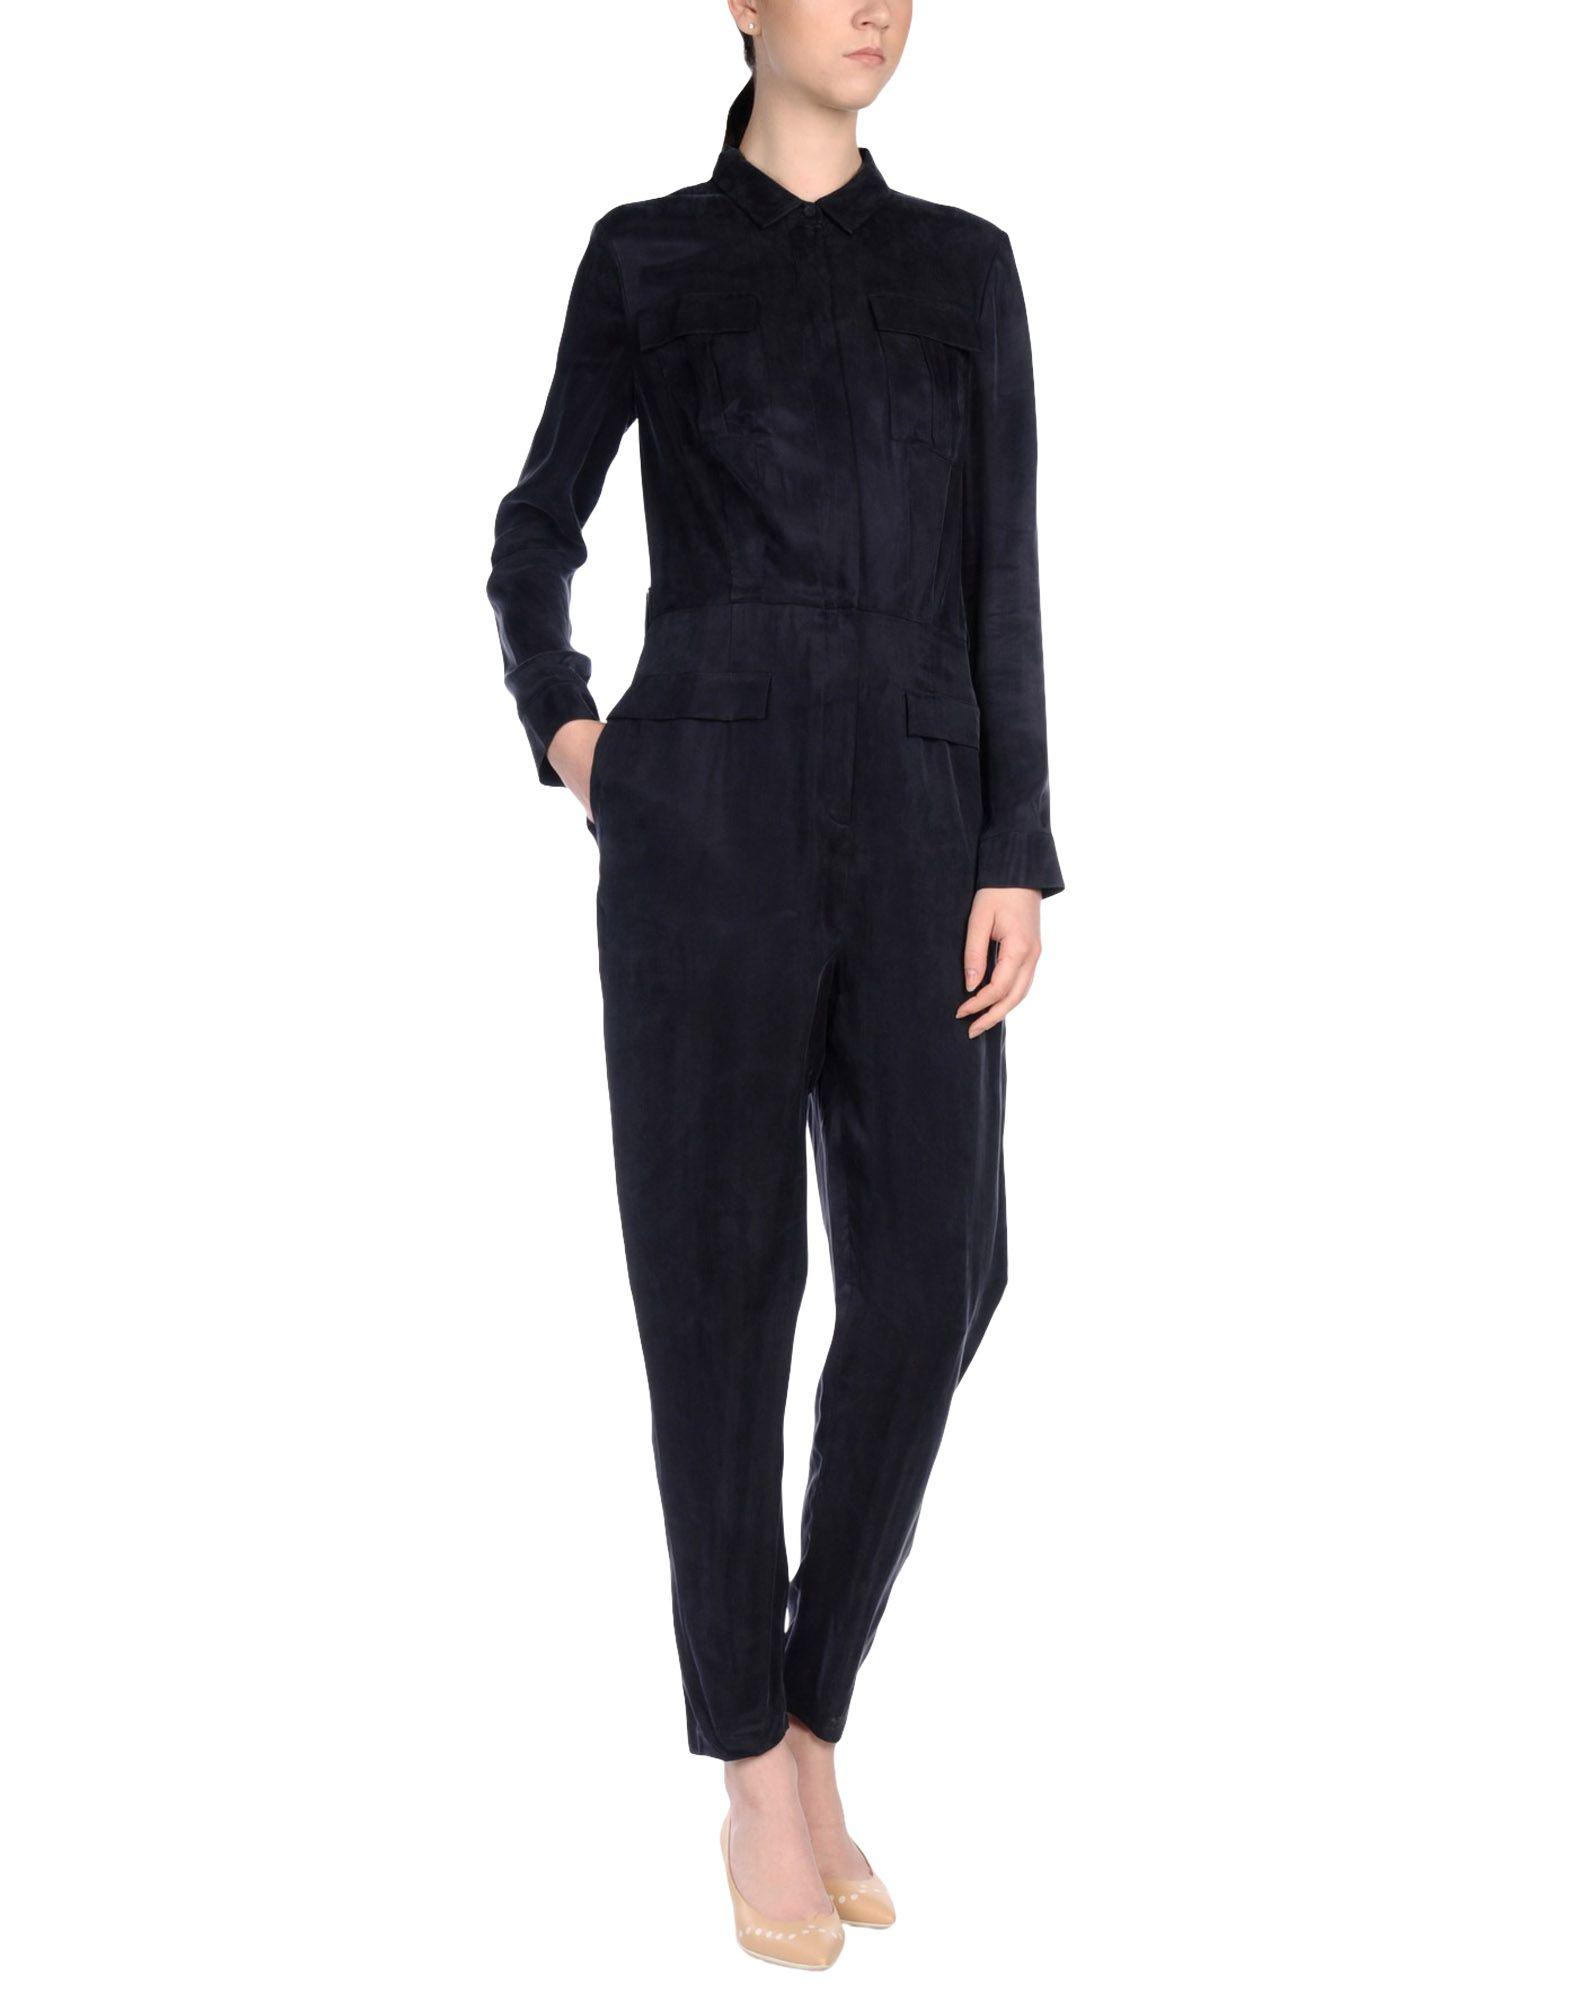 DUNGAREES - Jumpsuits IRIS & INK Outlet Prices Offer Cheap Sale Affordable cDpcj6r